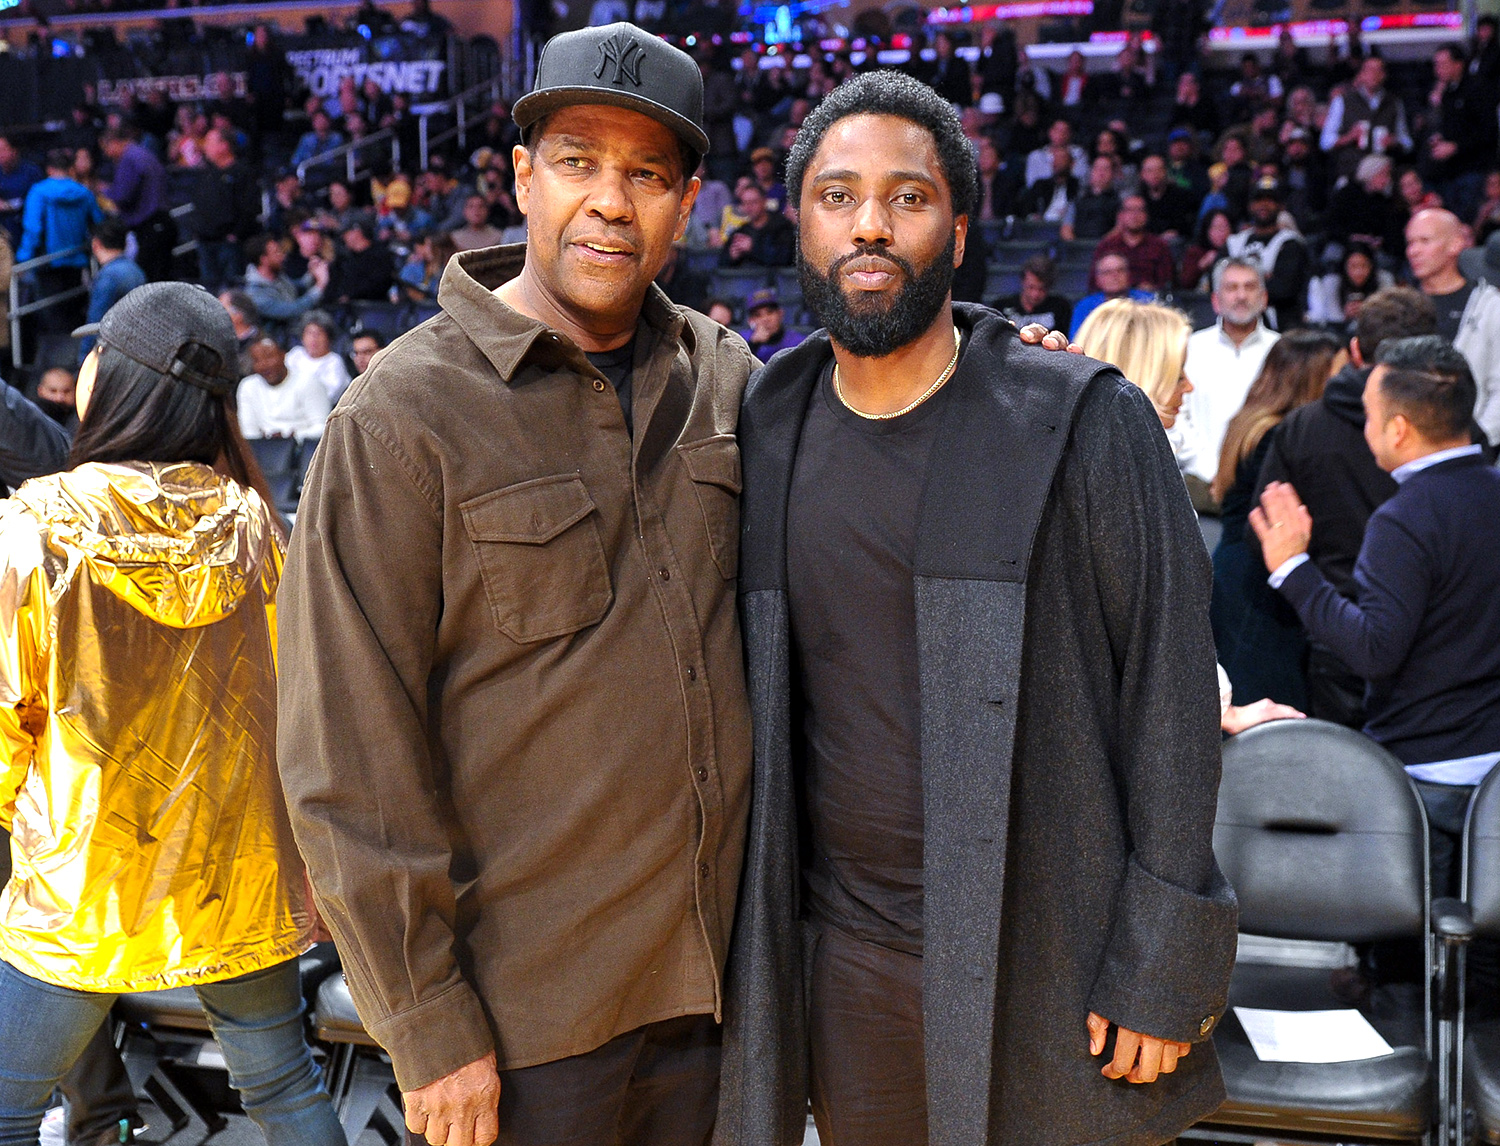 John David Washington denzel washington